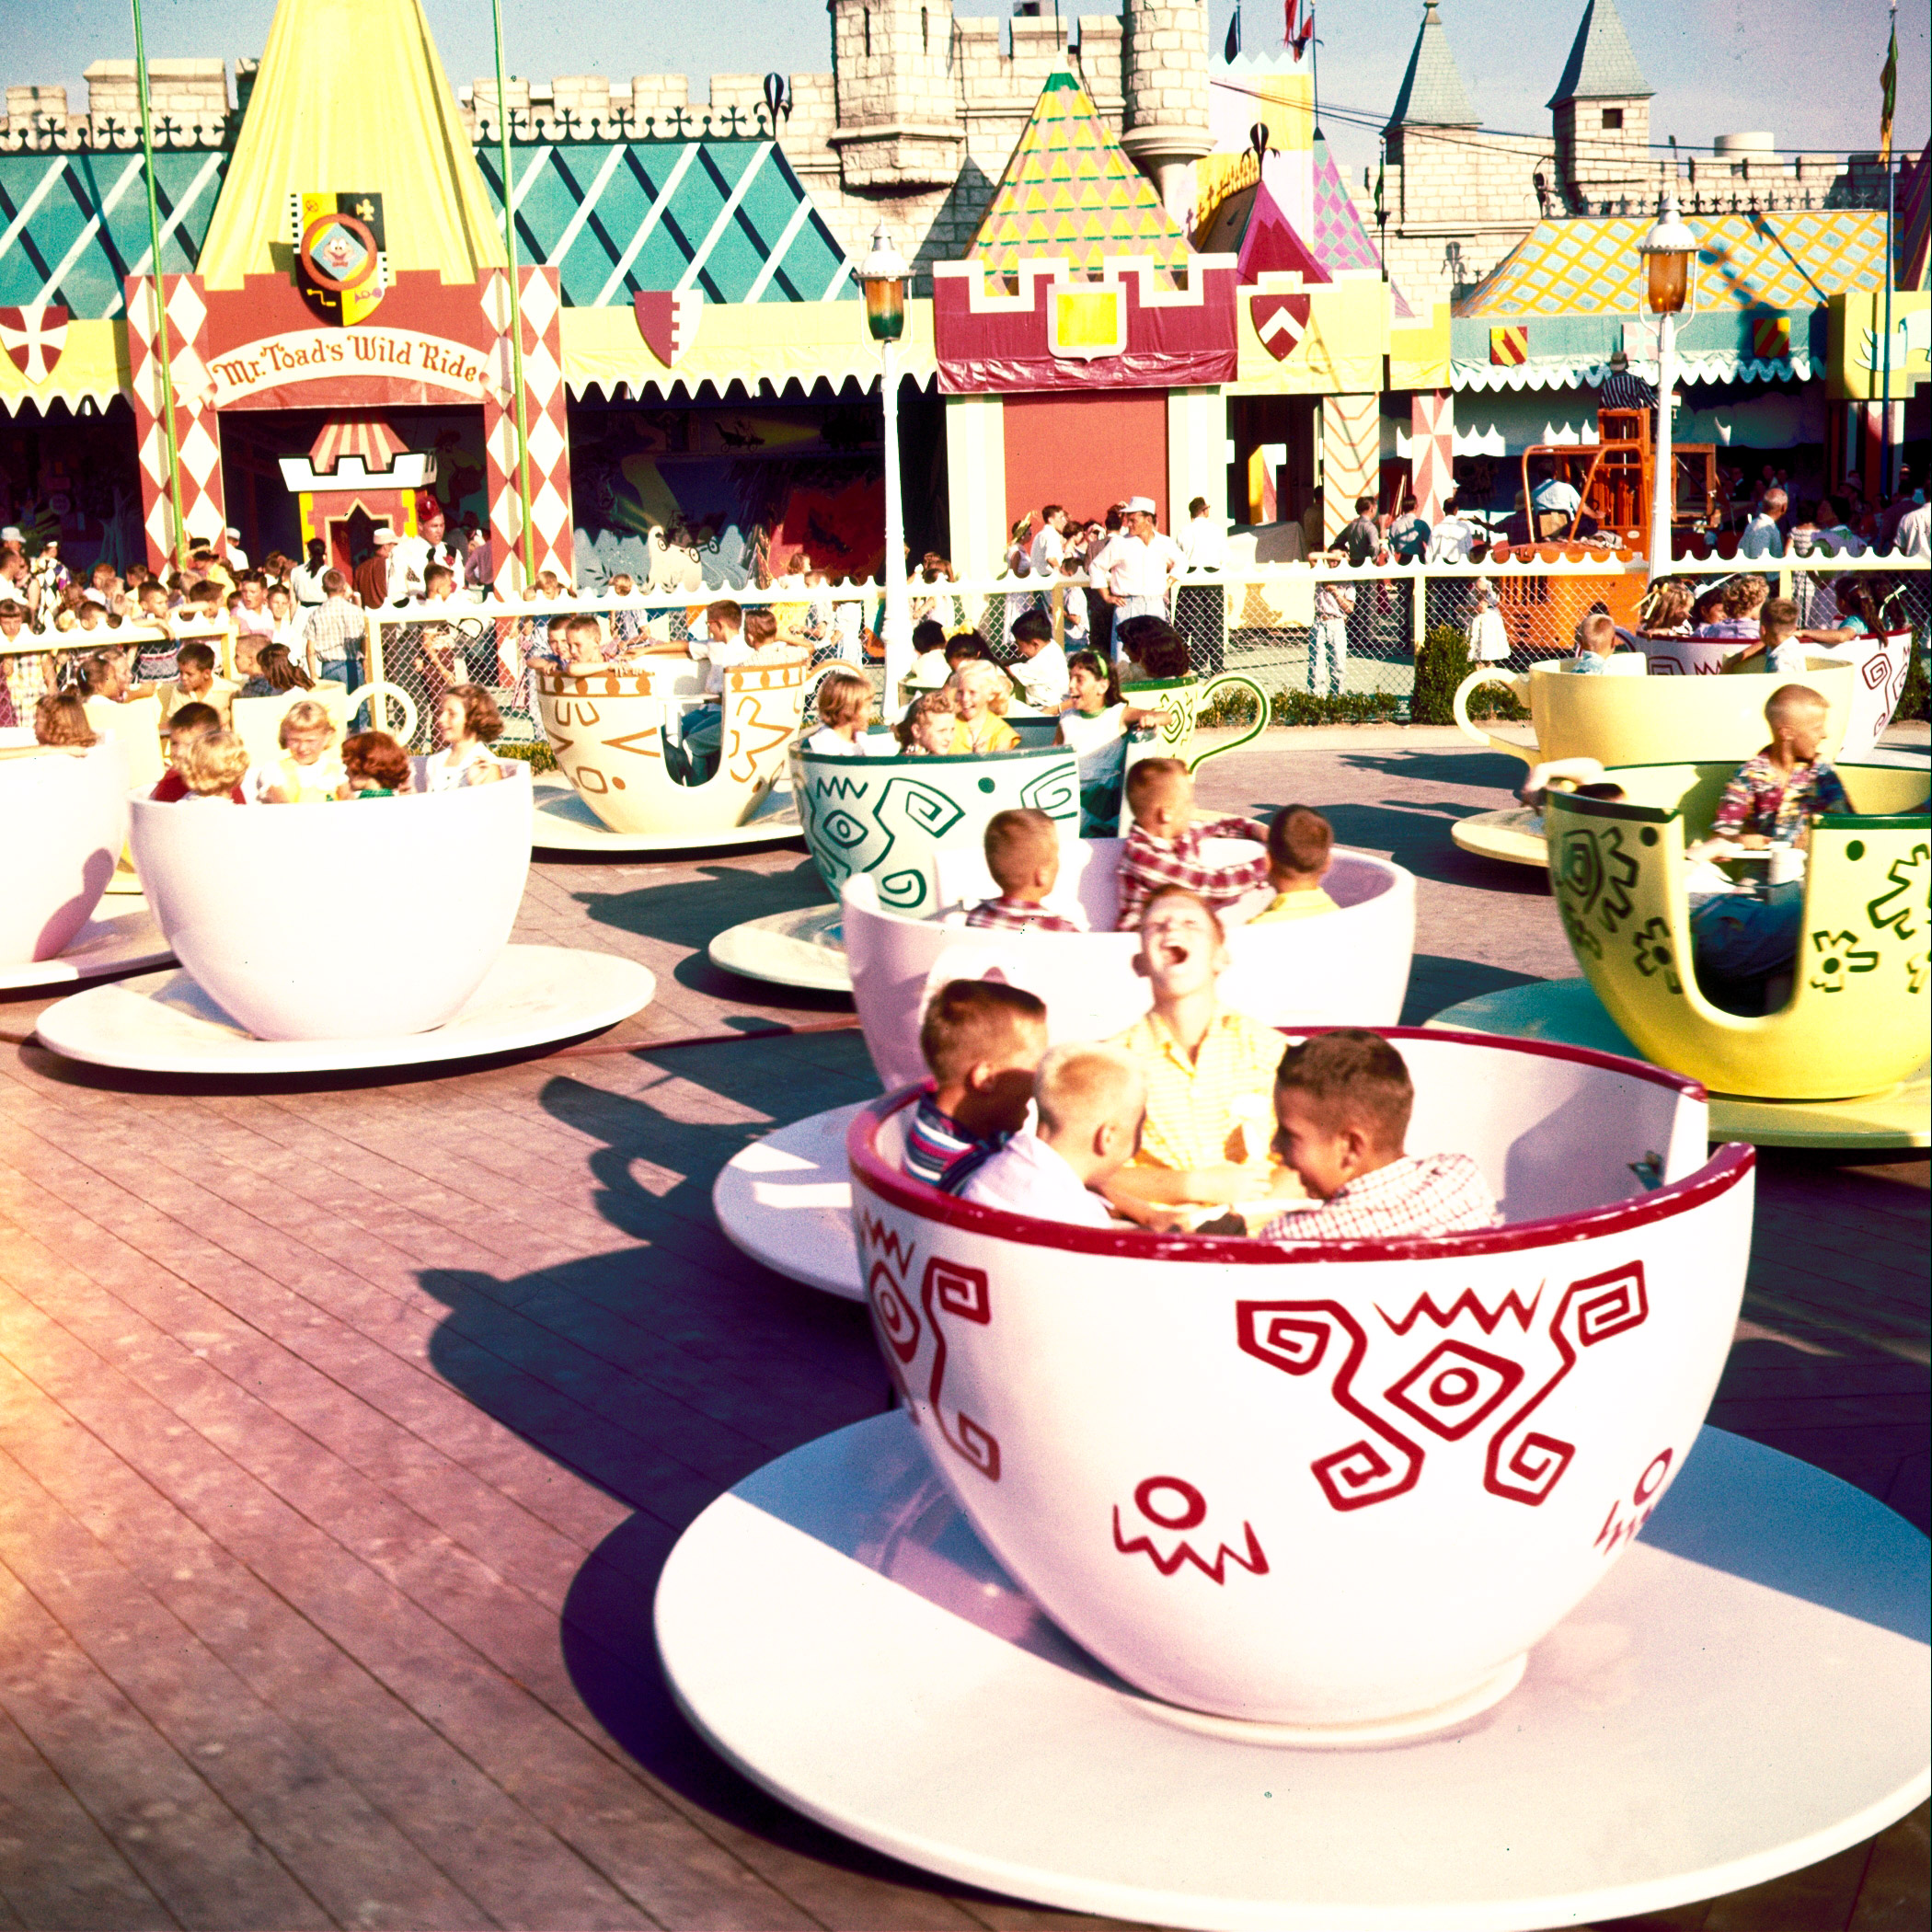 Caption from LIFE. Cups and saucers filled with squealing children as paying guests whirl through park's Fantasyland at Disney's  Mad Hatter's Tea Party.